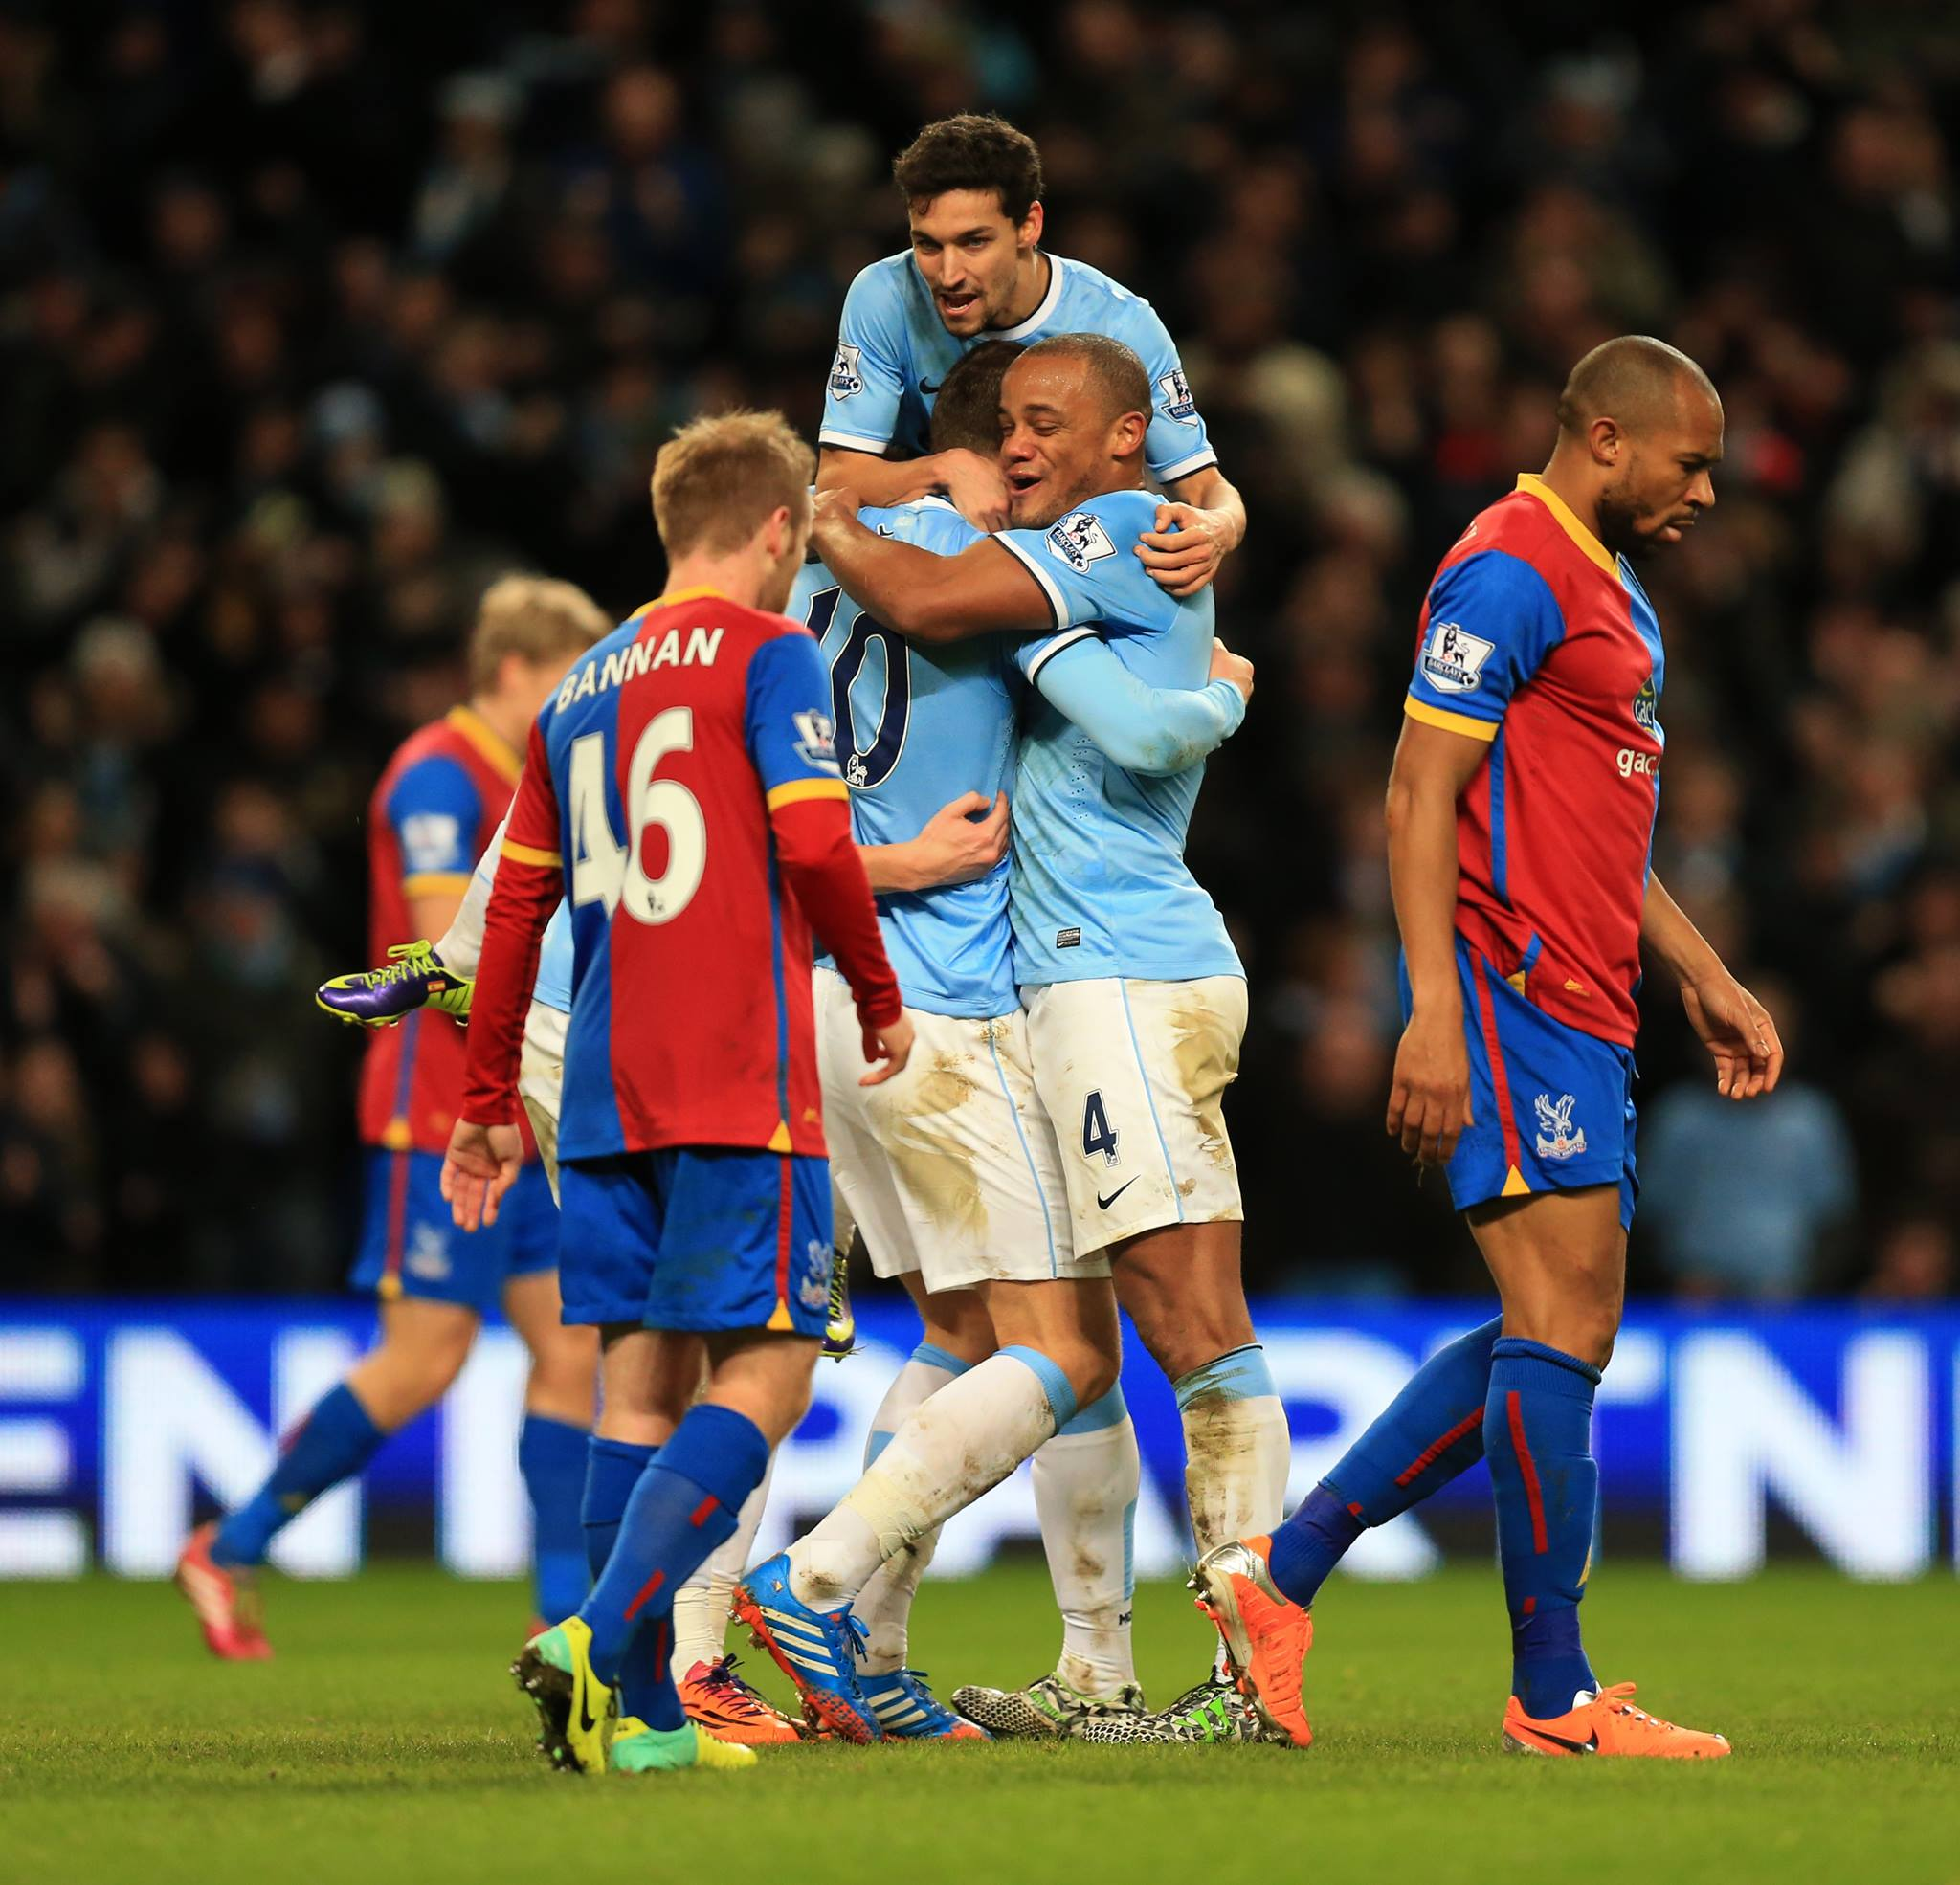 50 not out - Edin celebrates his 'goalden' anniversary with the winner over Palace last December. Courtesy @MCFC